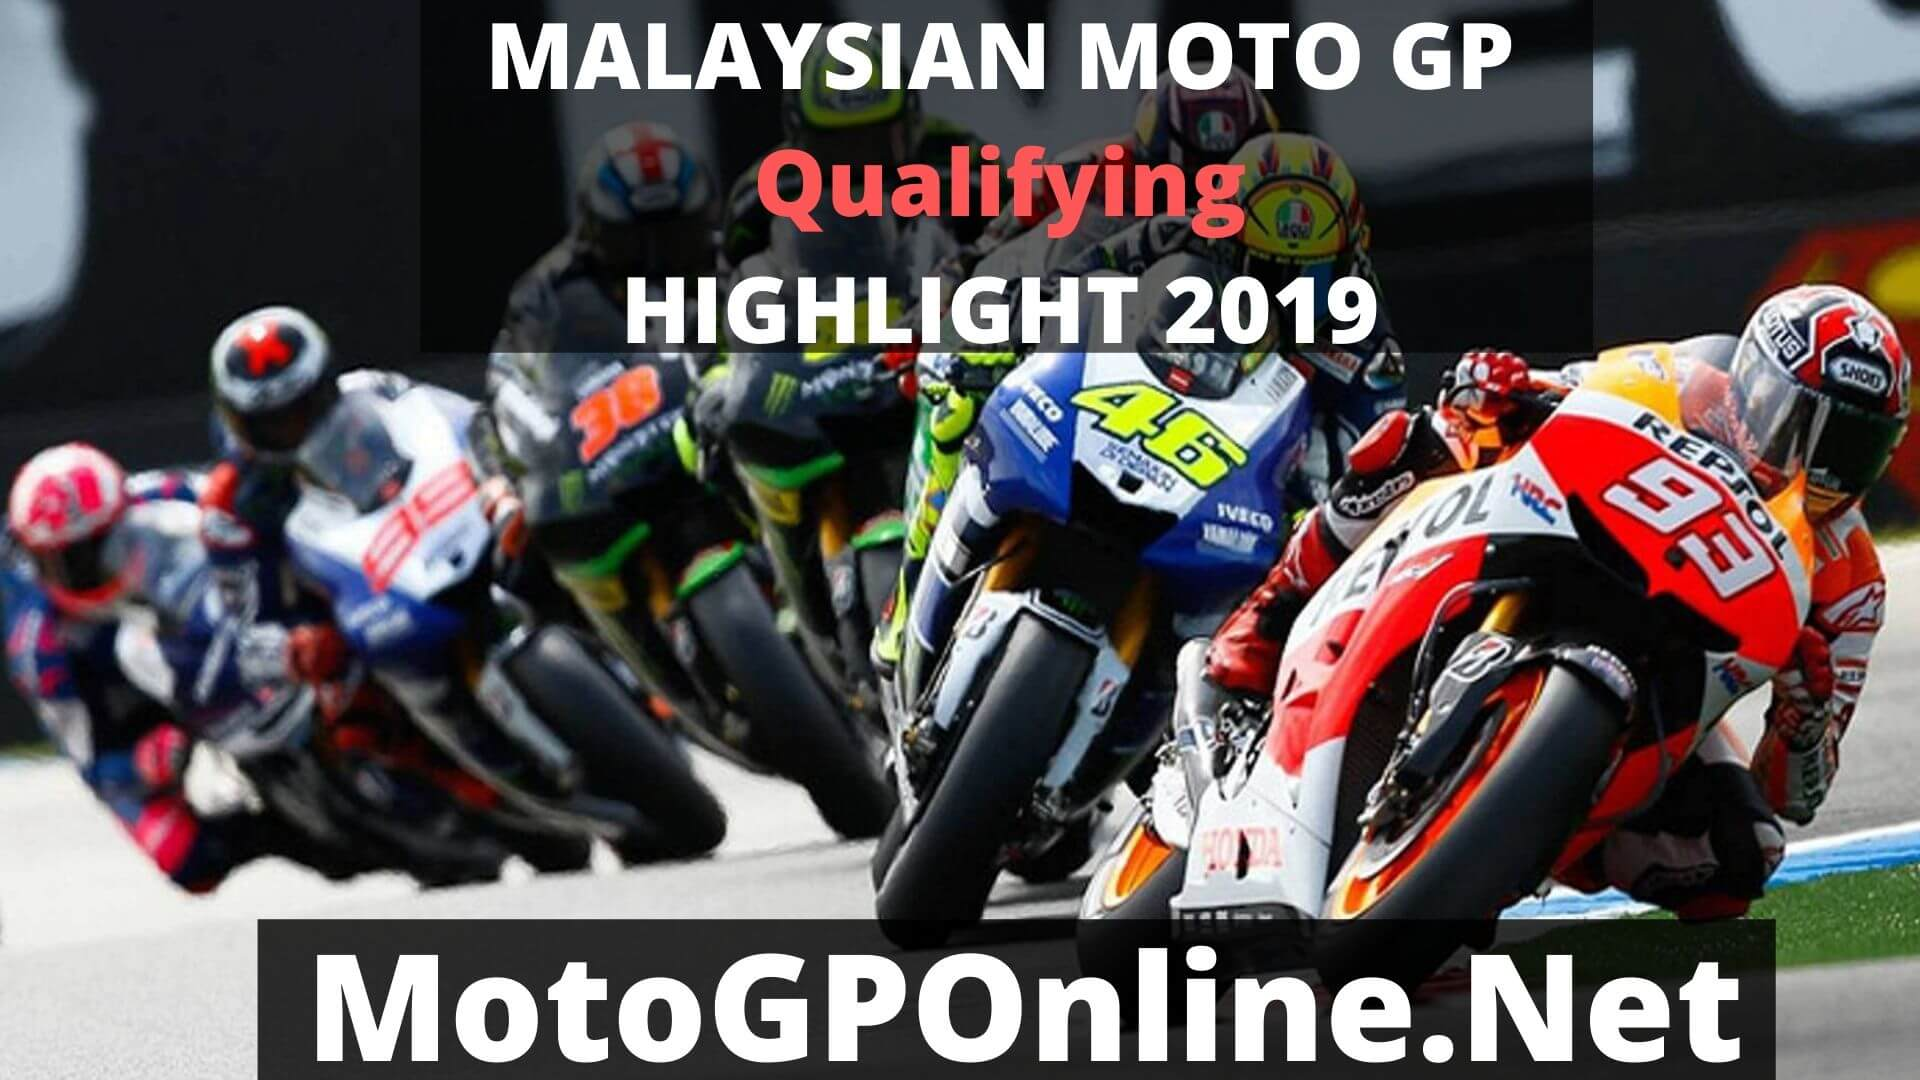 MotoGP Malaysian Motorcycle GP Qualifying GP Race Highlights 2019